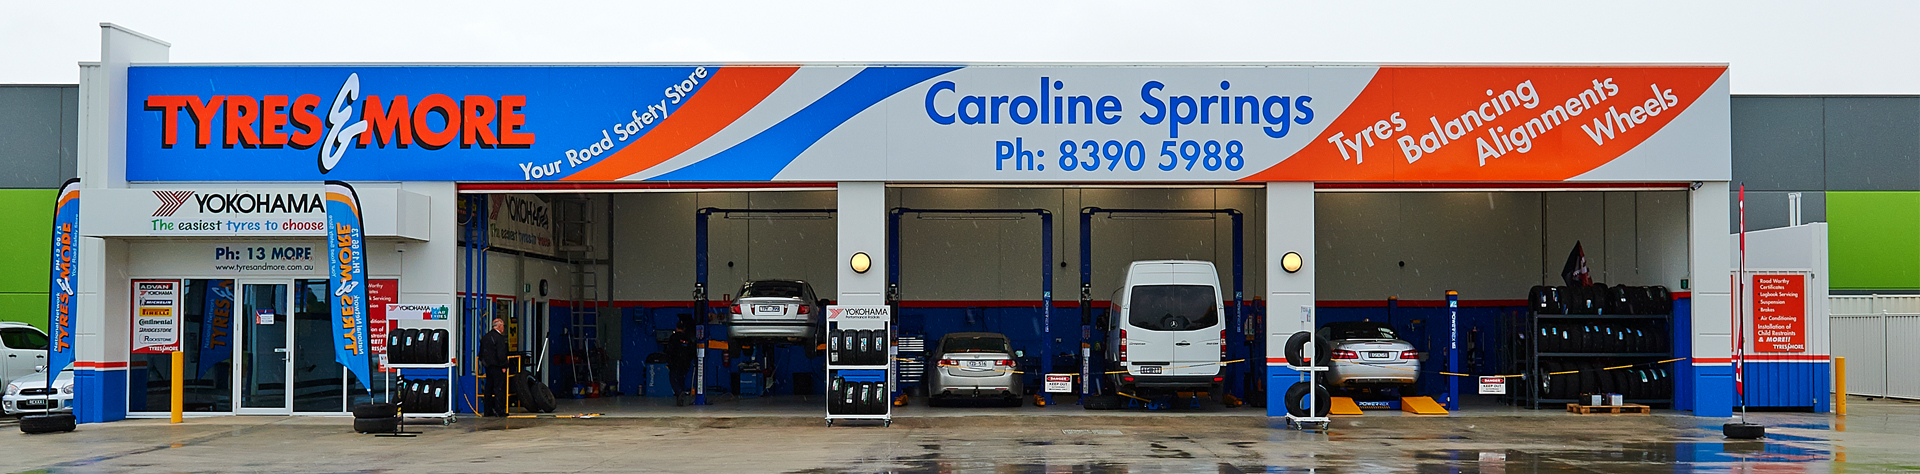 Caroline Springs Tyres and More tyre store image